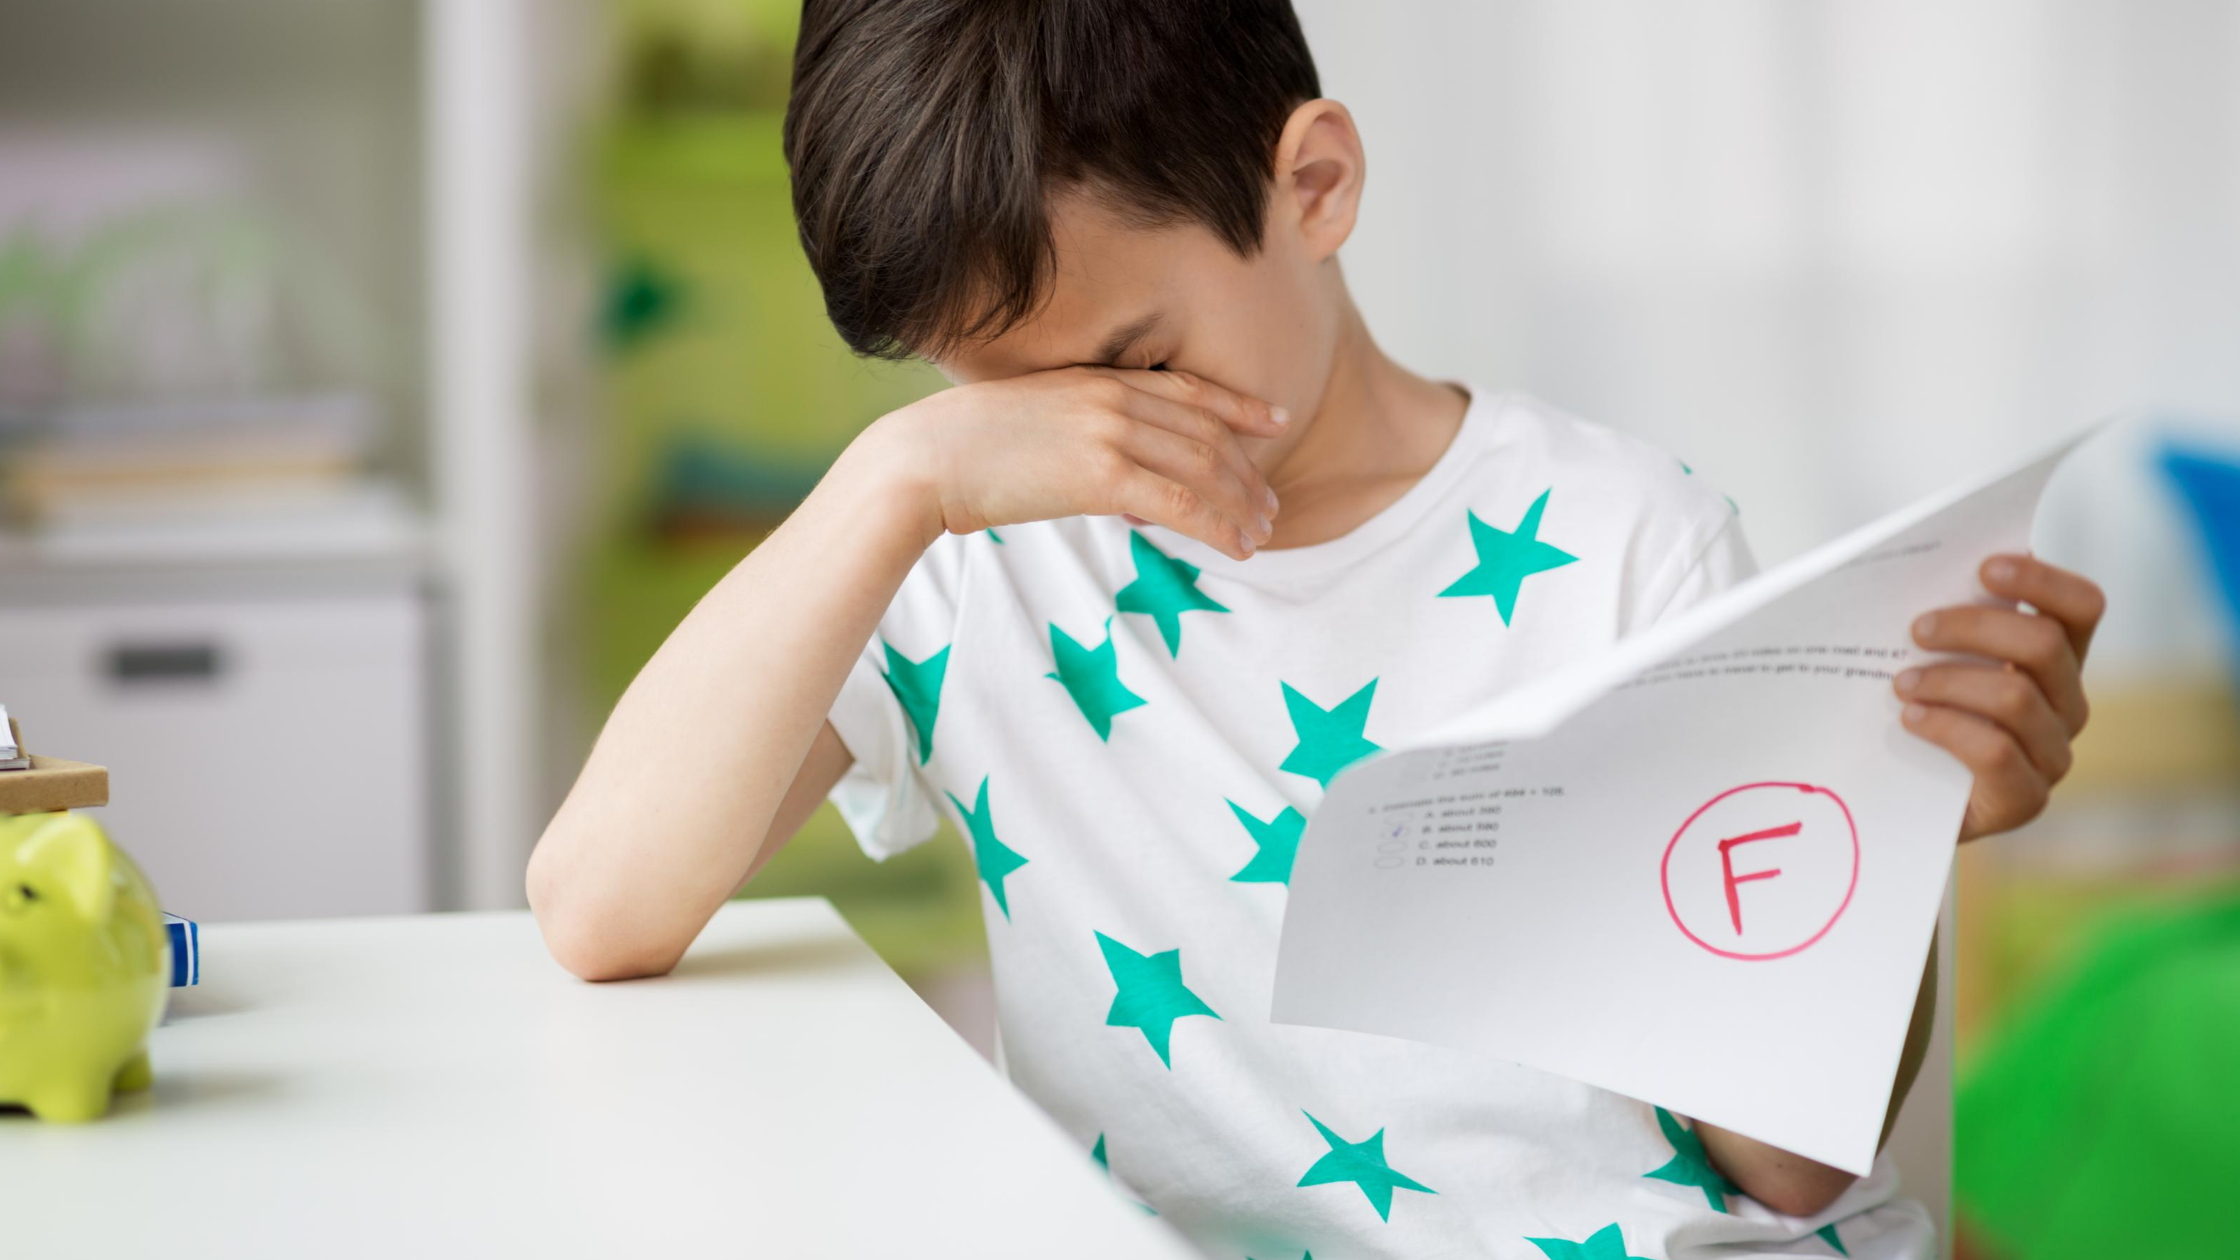 P4 to P5: Why did my child grades drop so drastically?